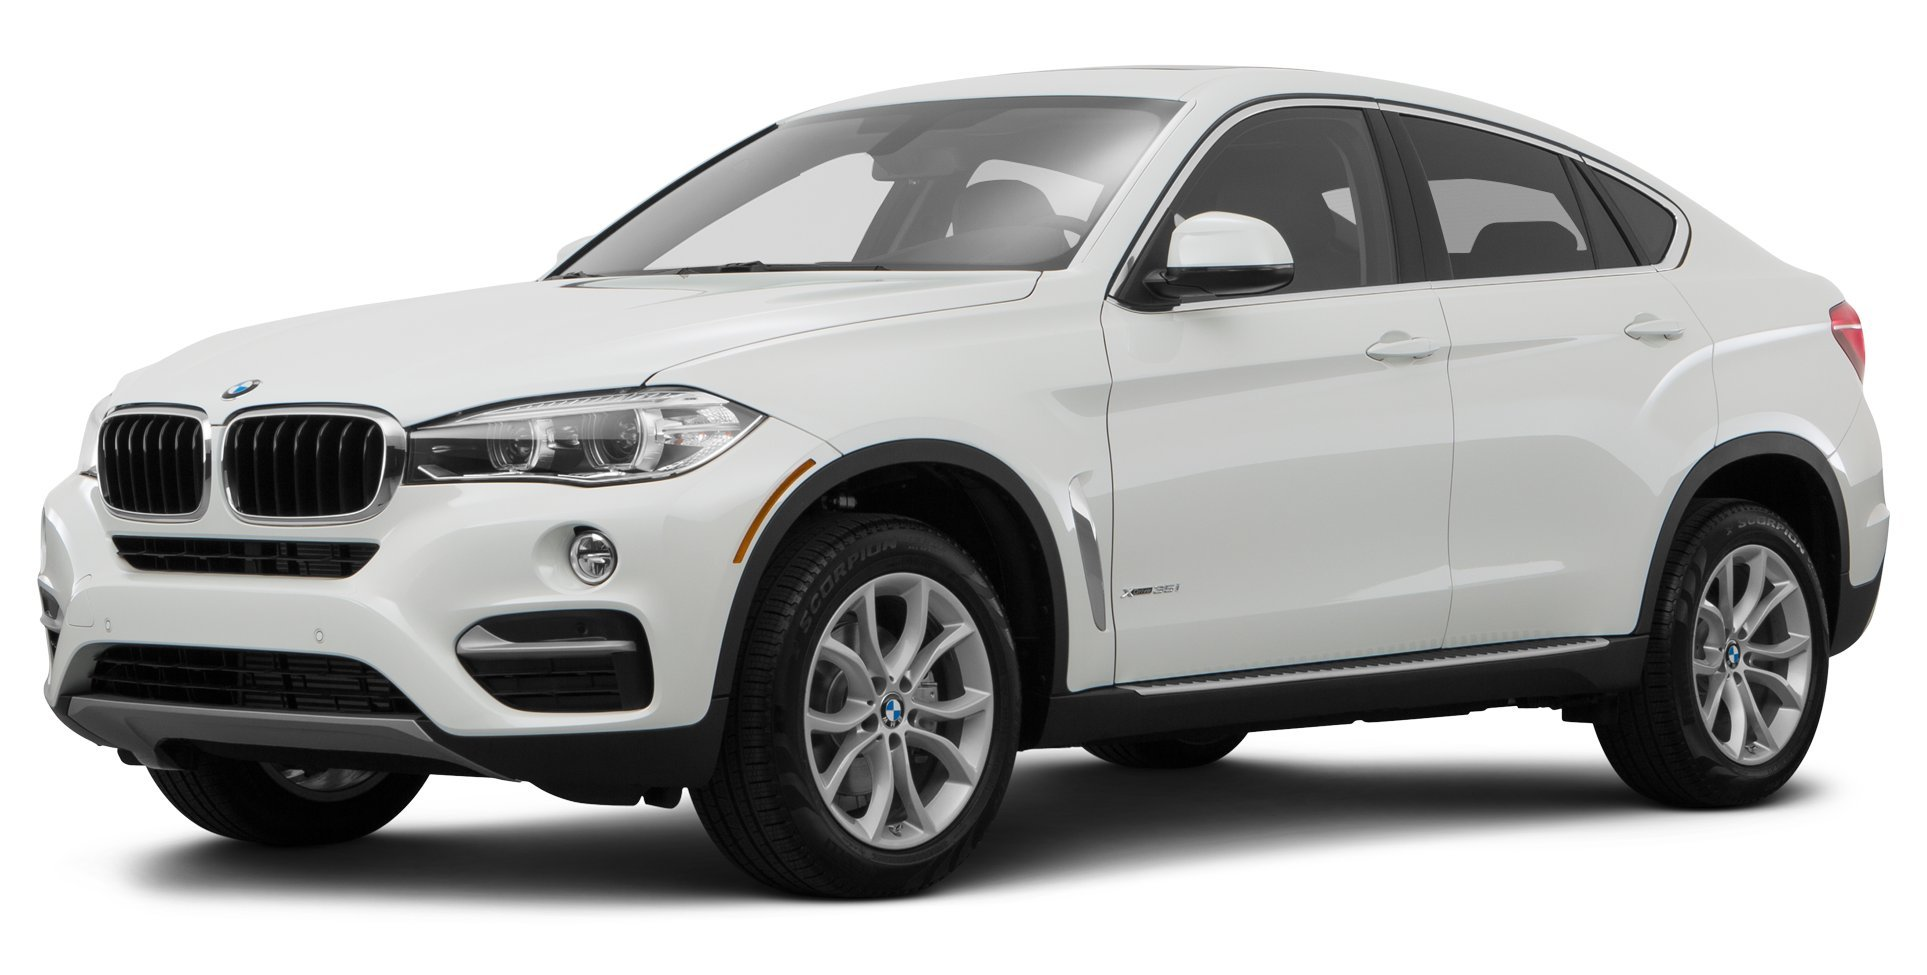 2015 Porsche Cayenne Diesel, All Wheel Drive 4-Door, 2015 BMW X6 xDrive35i, All Wheel Drive 4-Door ...